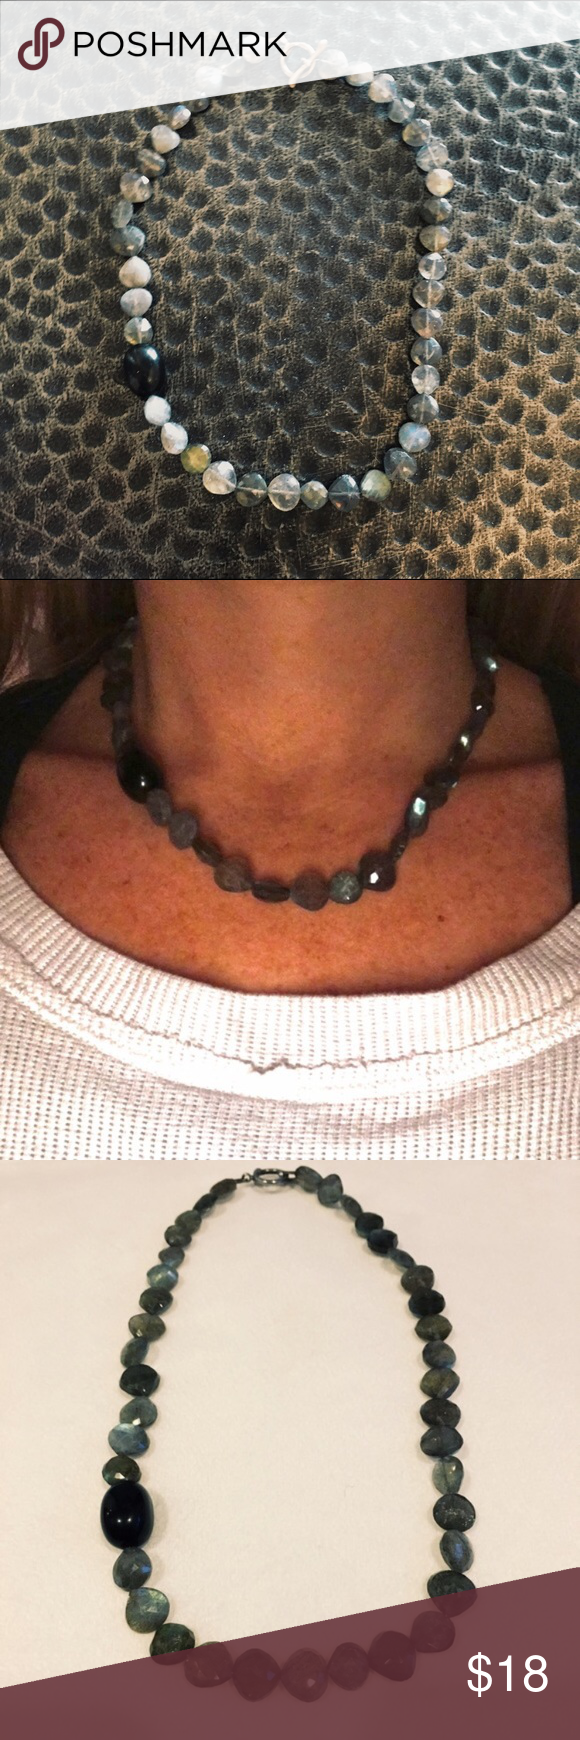 🆕Grey-ish Beaded Necklace Handmade Off center black stone with smokey grey stones. Stones were very expensive. Not sure type of stone. Toggle clasp. Short but looks cute dress or casual. Jewelry Necklaces